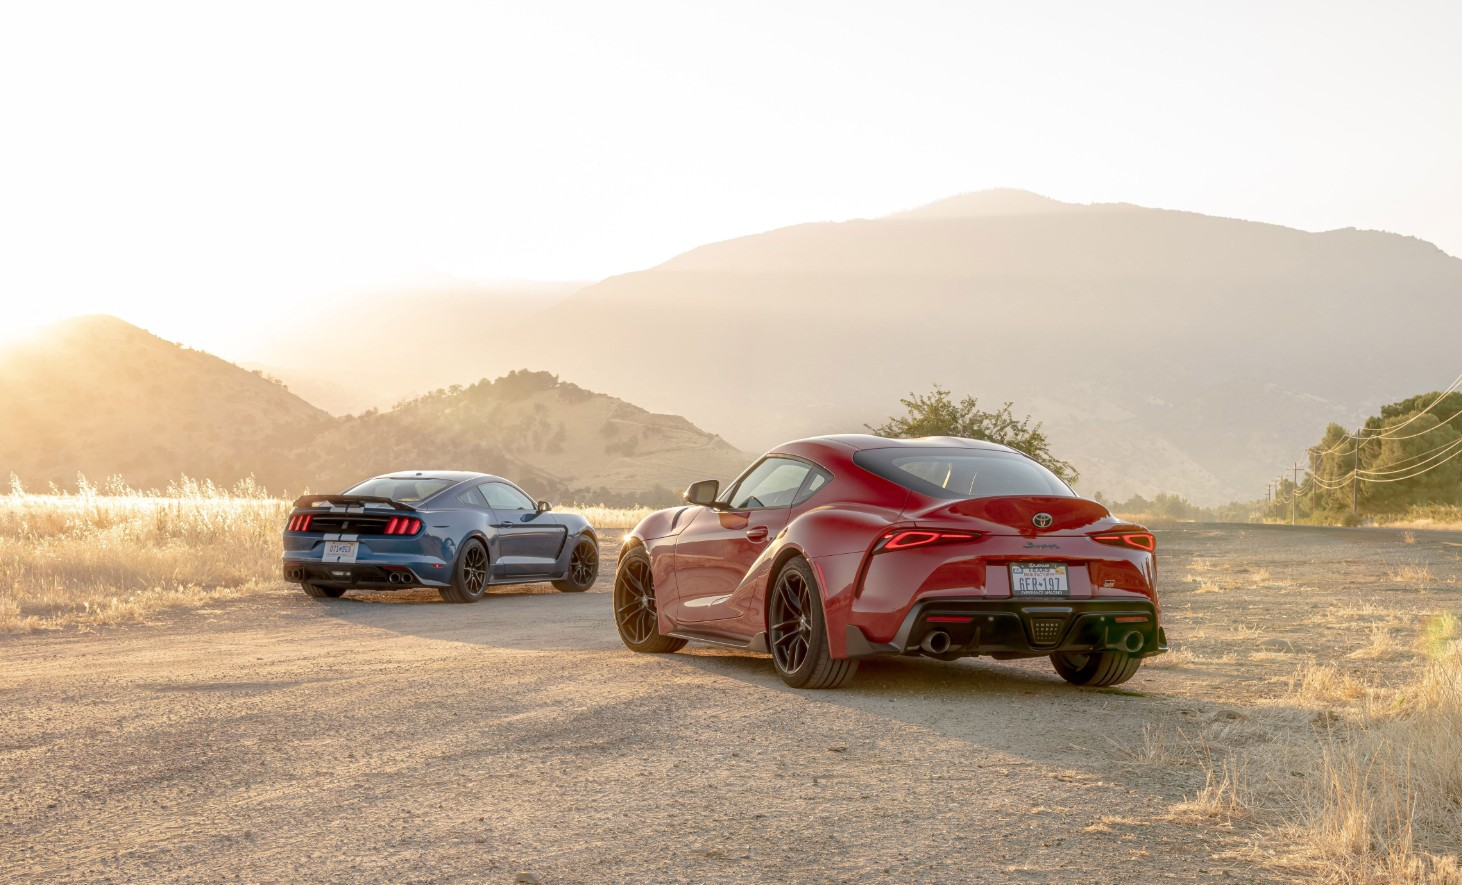 2019-ford-mustang-shelby-gt350-vs-2020-toyota-gr-supra-marc-urbano-car-and-driver.jpg